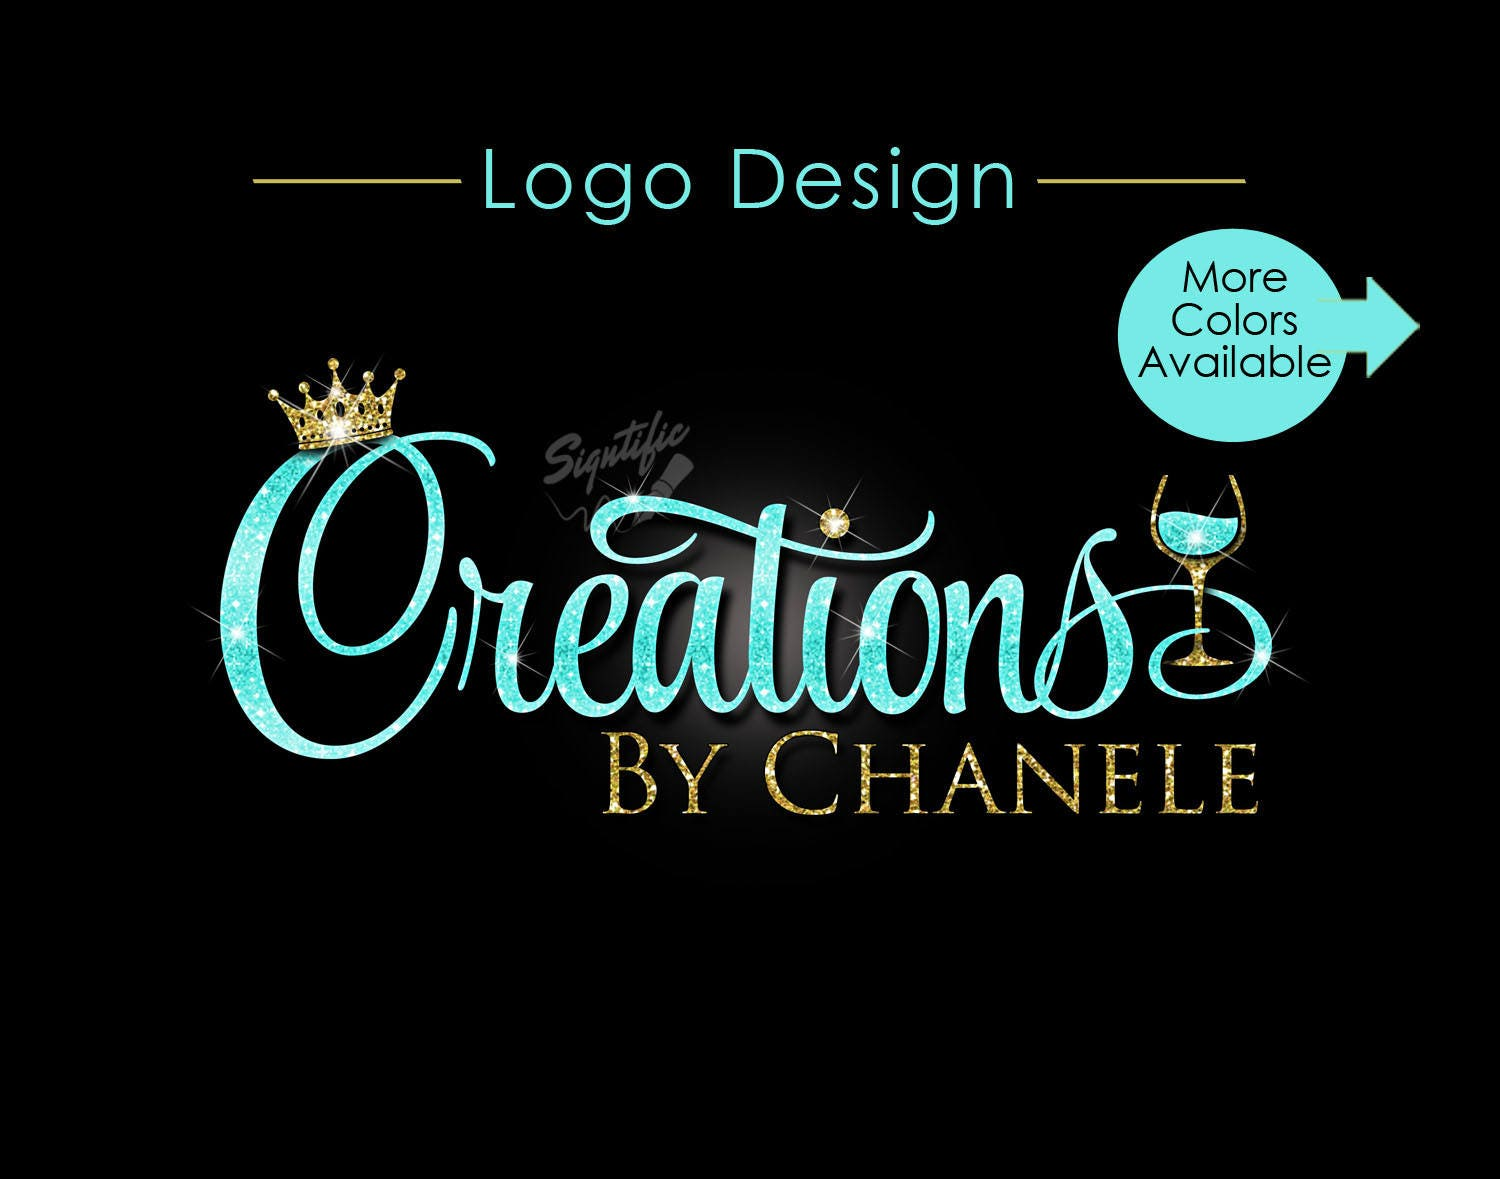 logo design custom logo design logo logos custom logo business